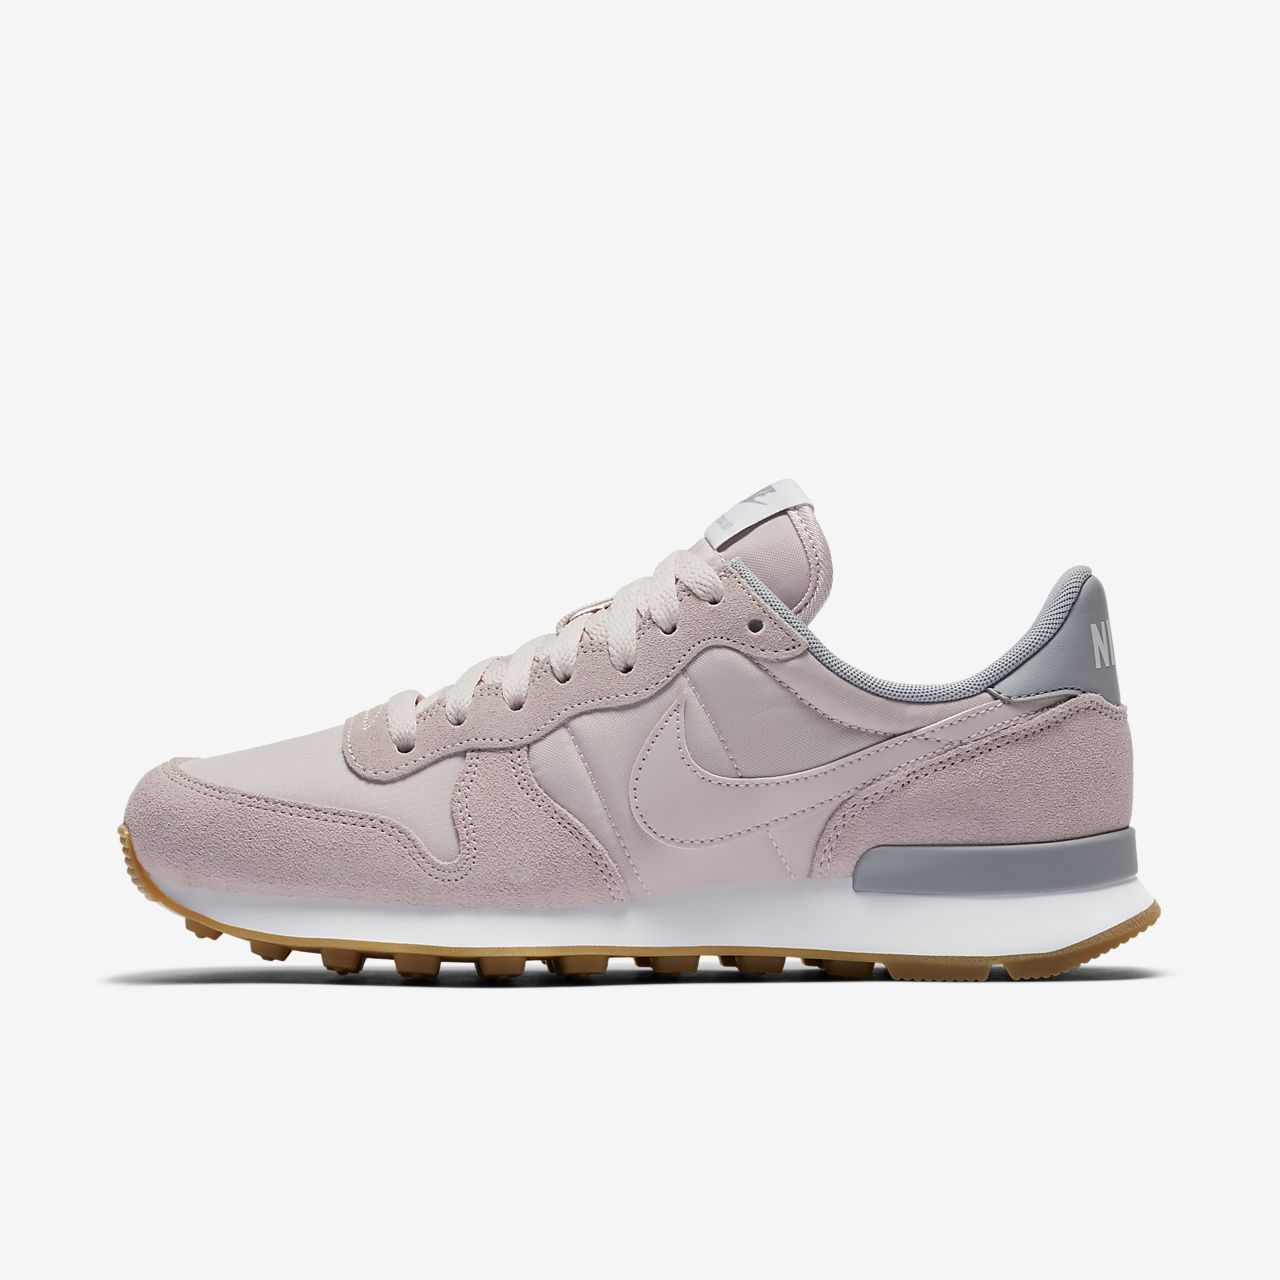 Low Resolution Nike Internationalist Zapatillas - Mujer Nike  Internationalist Zapatillas - Mujer